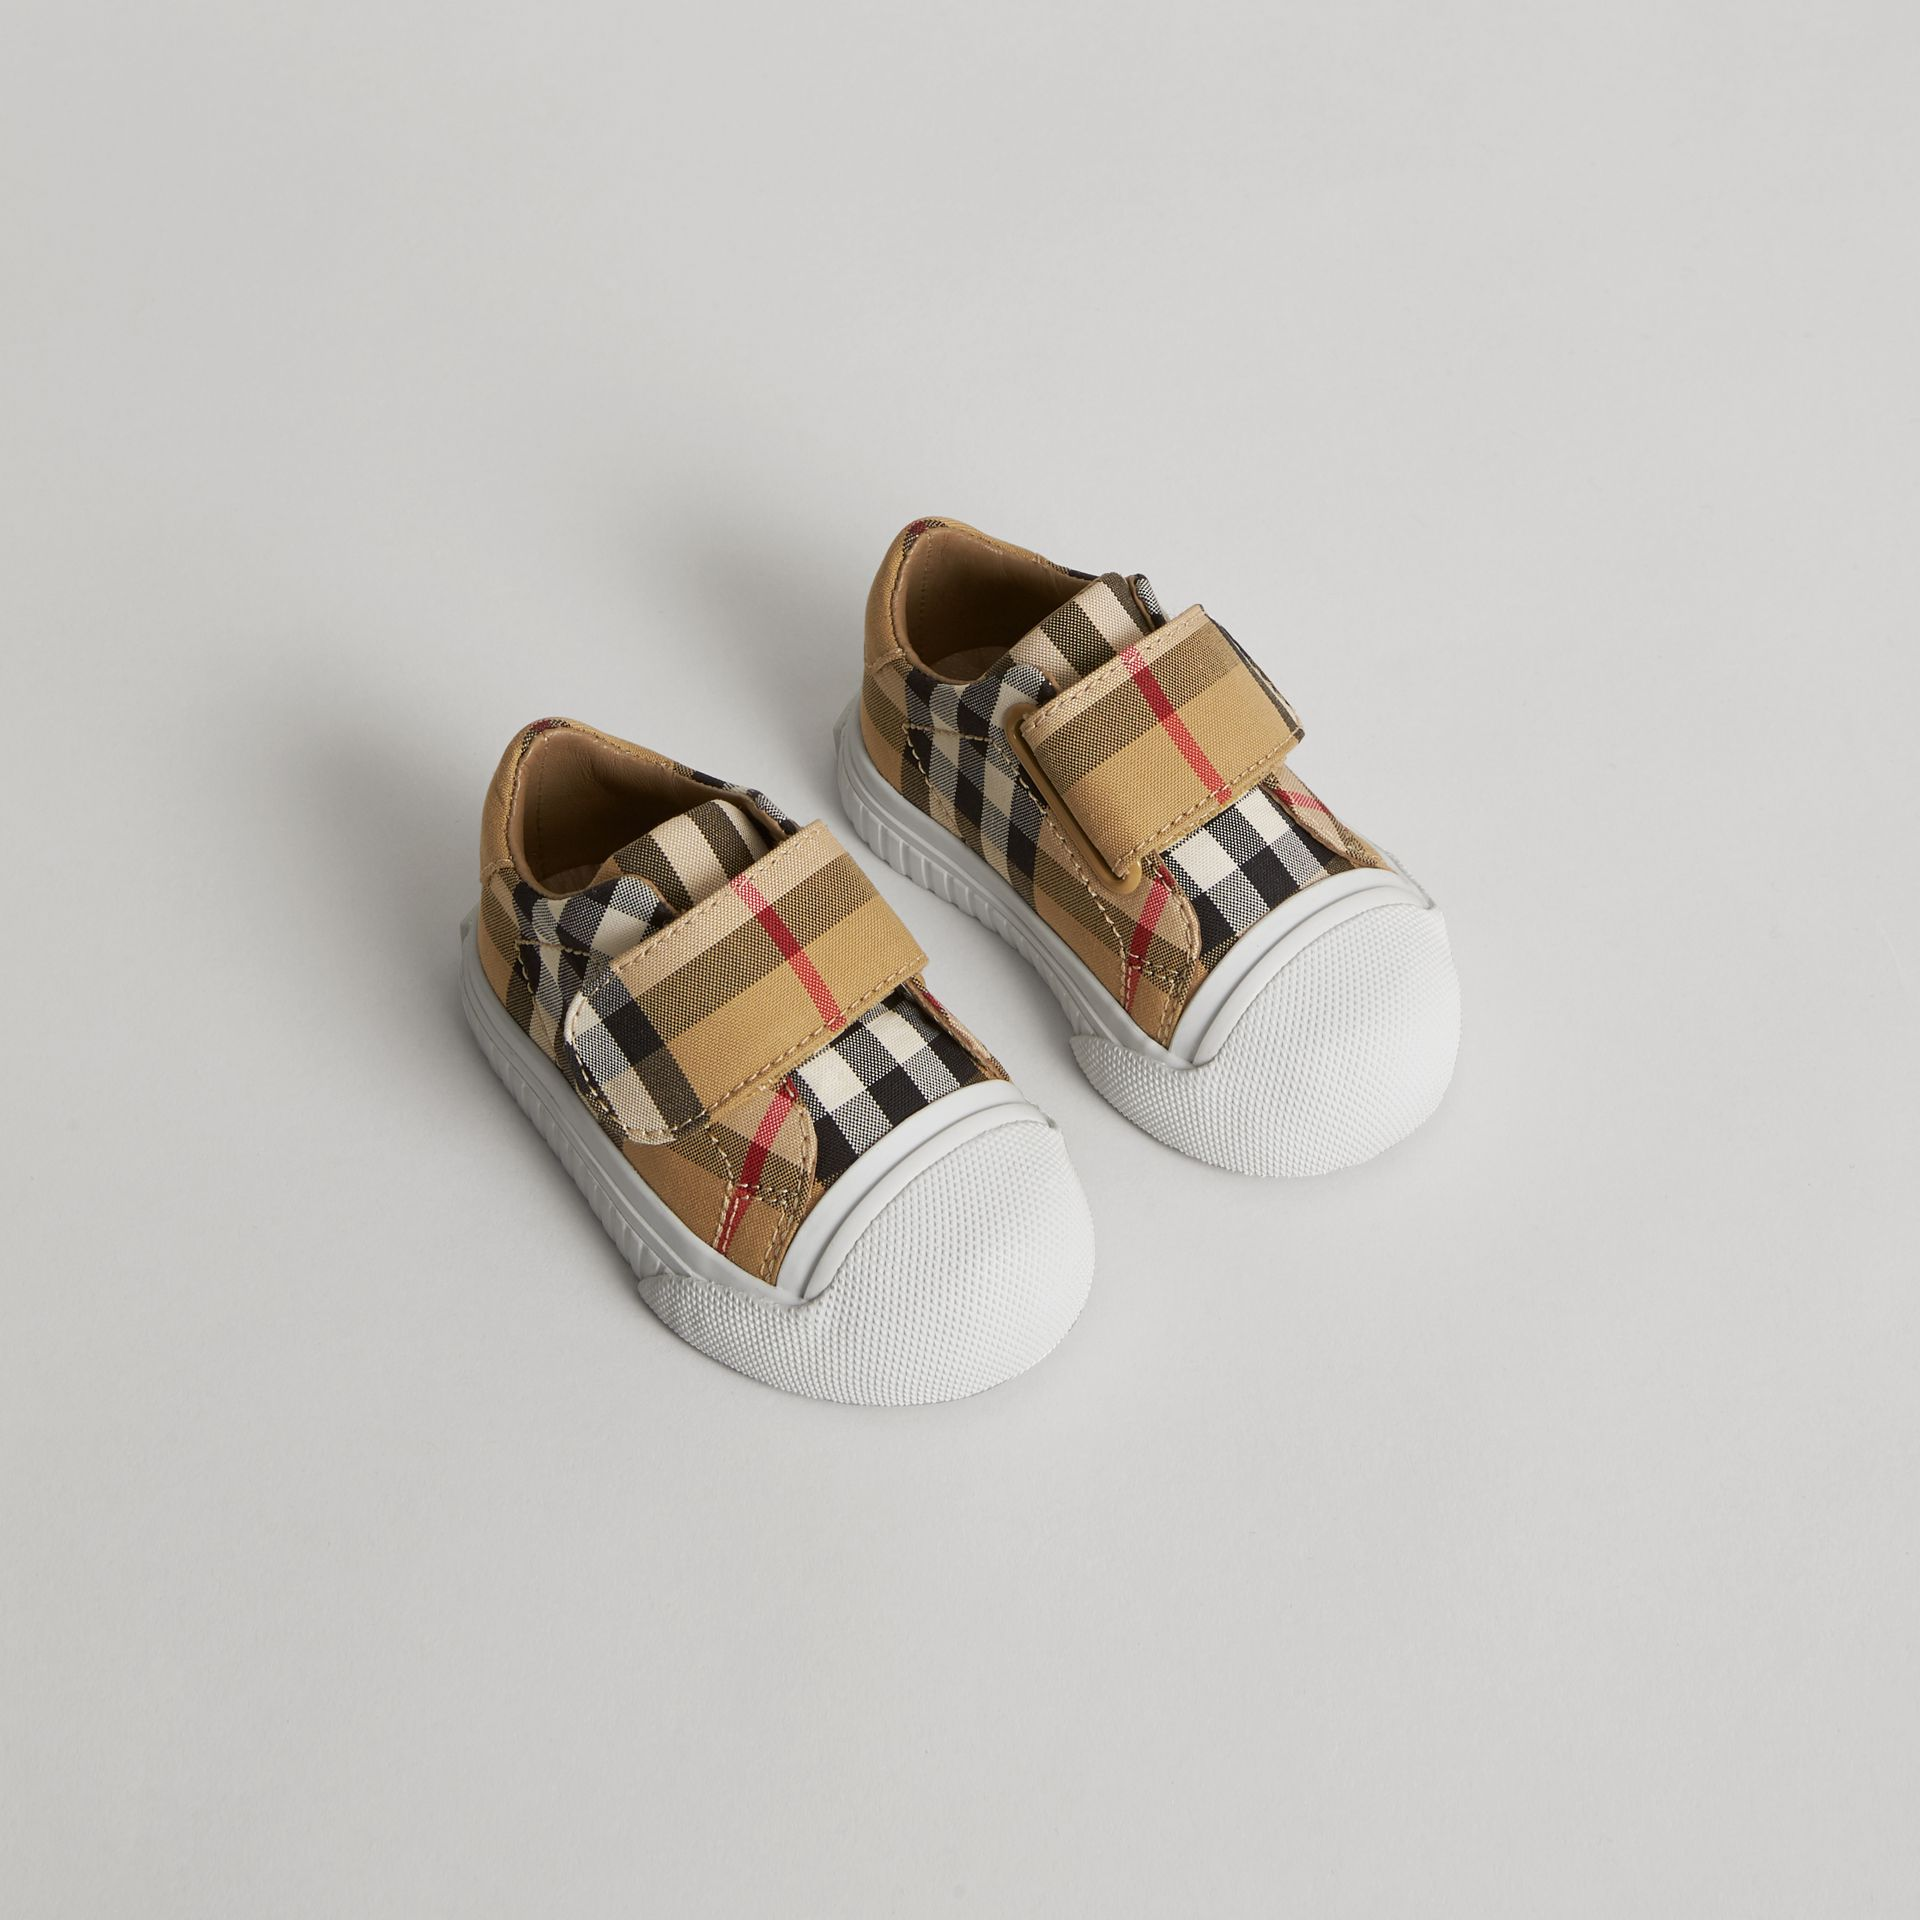 Sneakers en cuir à motif Vintage check (Jaune Antique/blanc Optique) - Enfant | Burberry - photo de la galerie 0